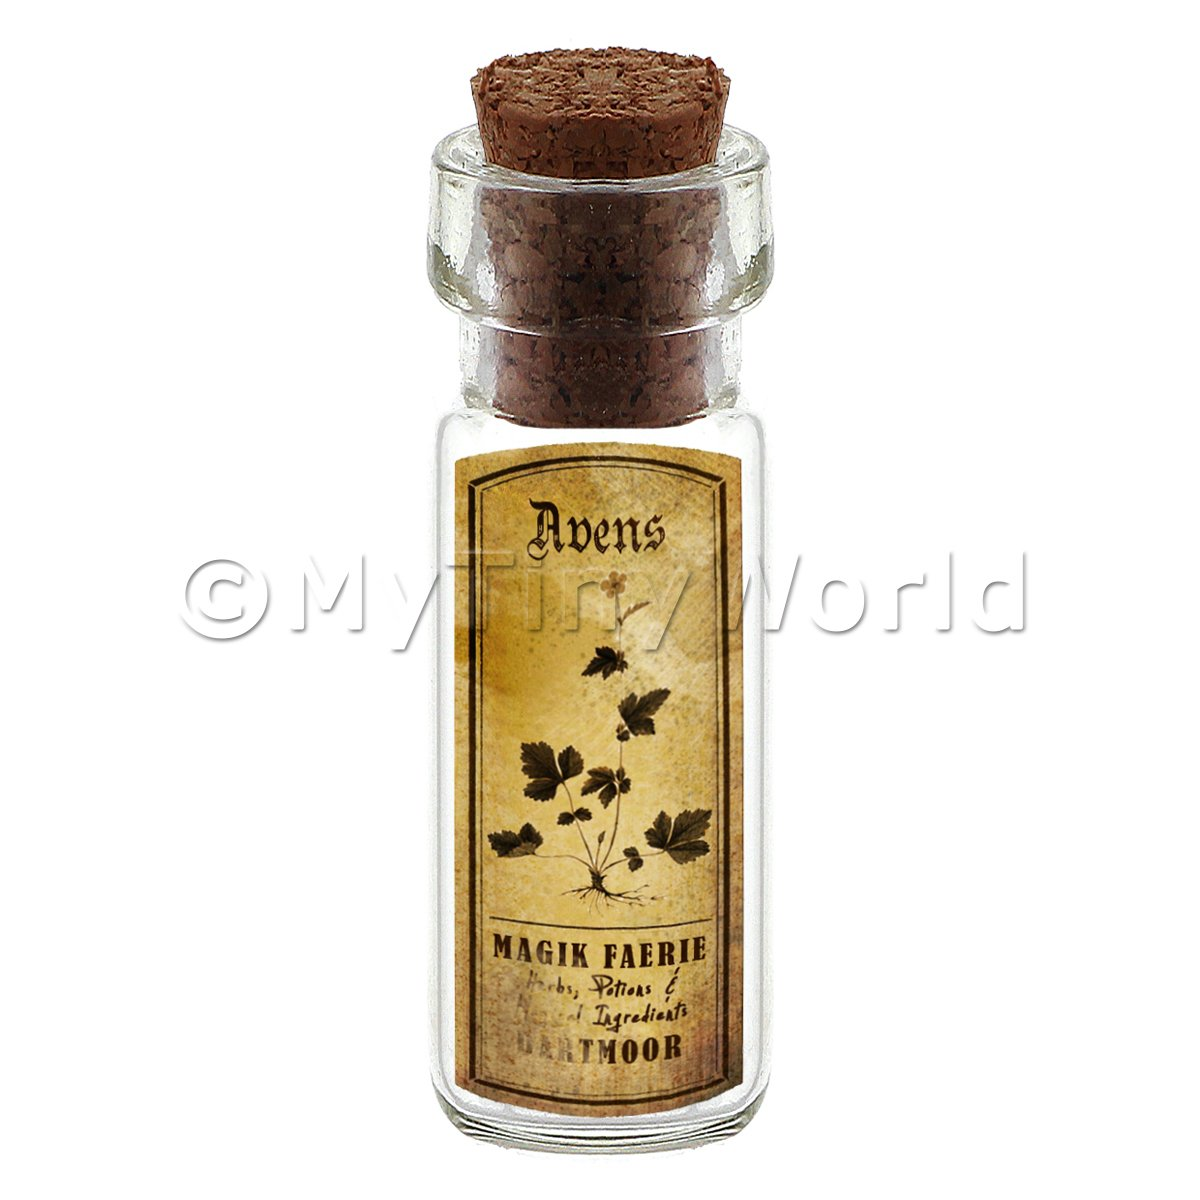 Dolls House Apothecary Avens Herb Short Sepia Label And Bottle